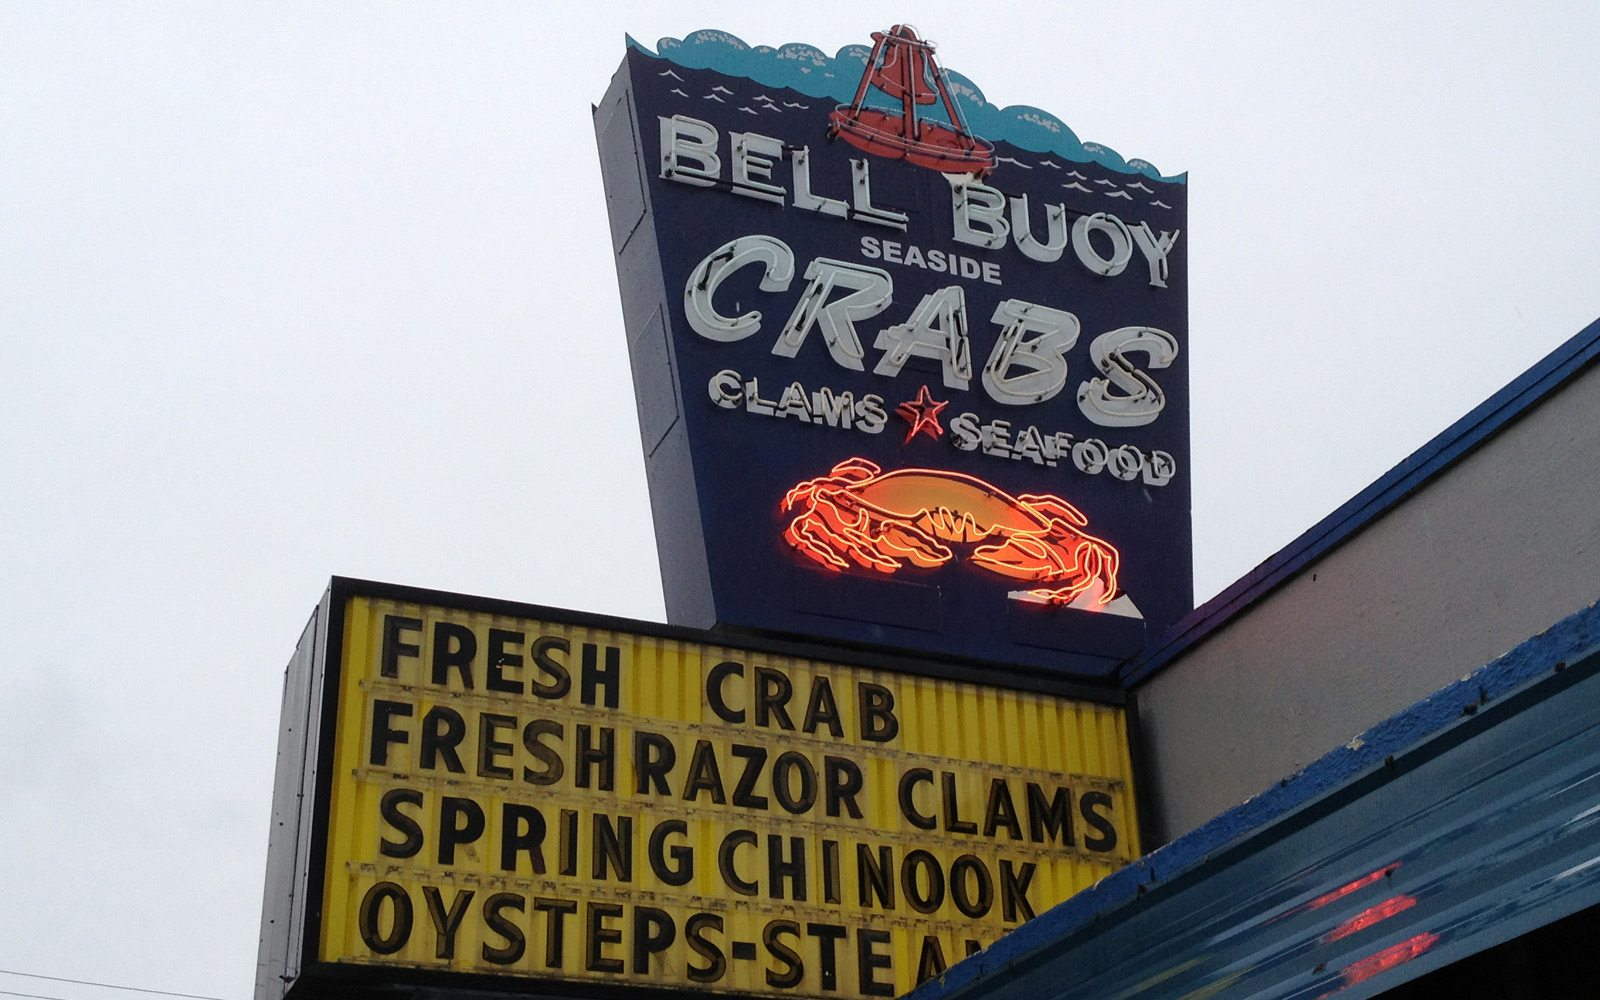 Bell Buoy Of Seaside Offers Fresh Seafood And Features Ready To Eat Items In